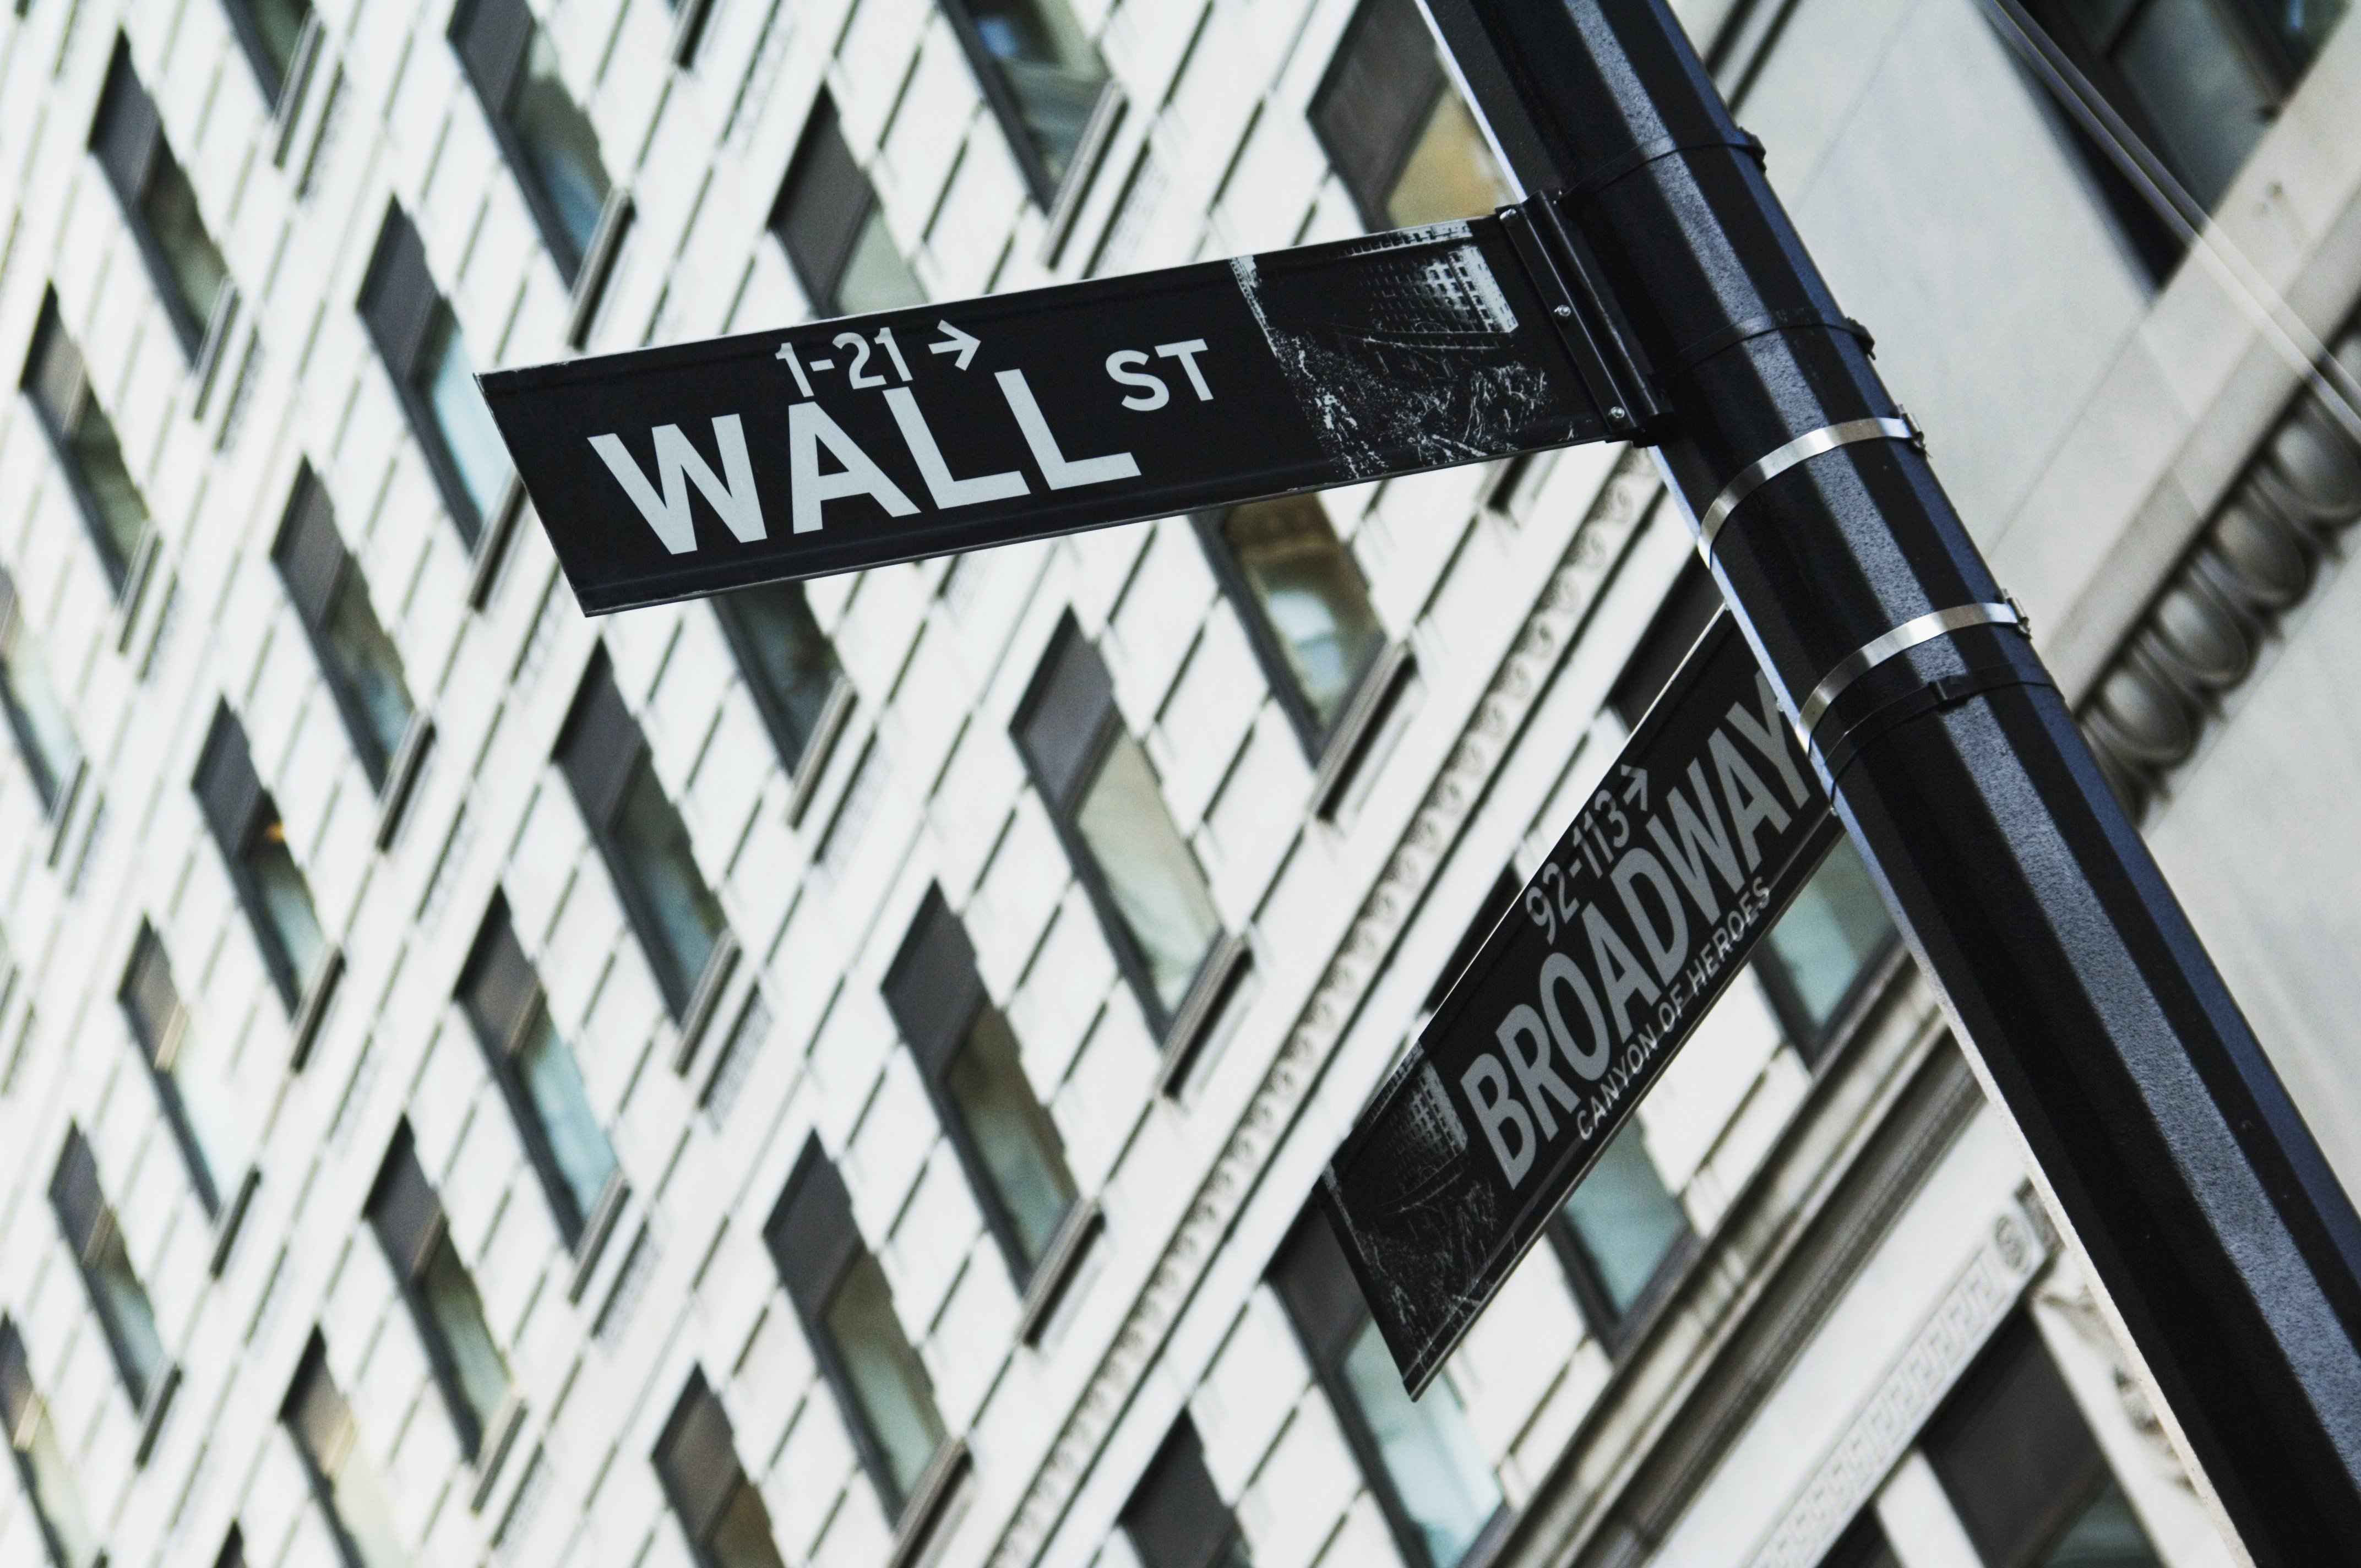 A street sign for Wall Street in New York City.